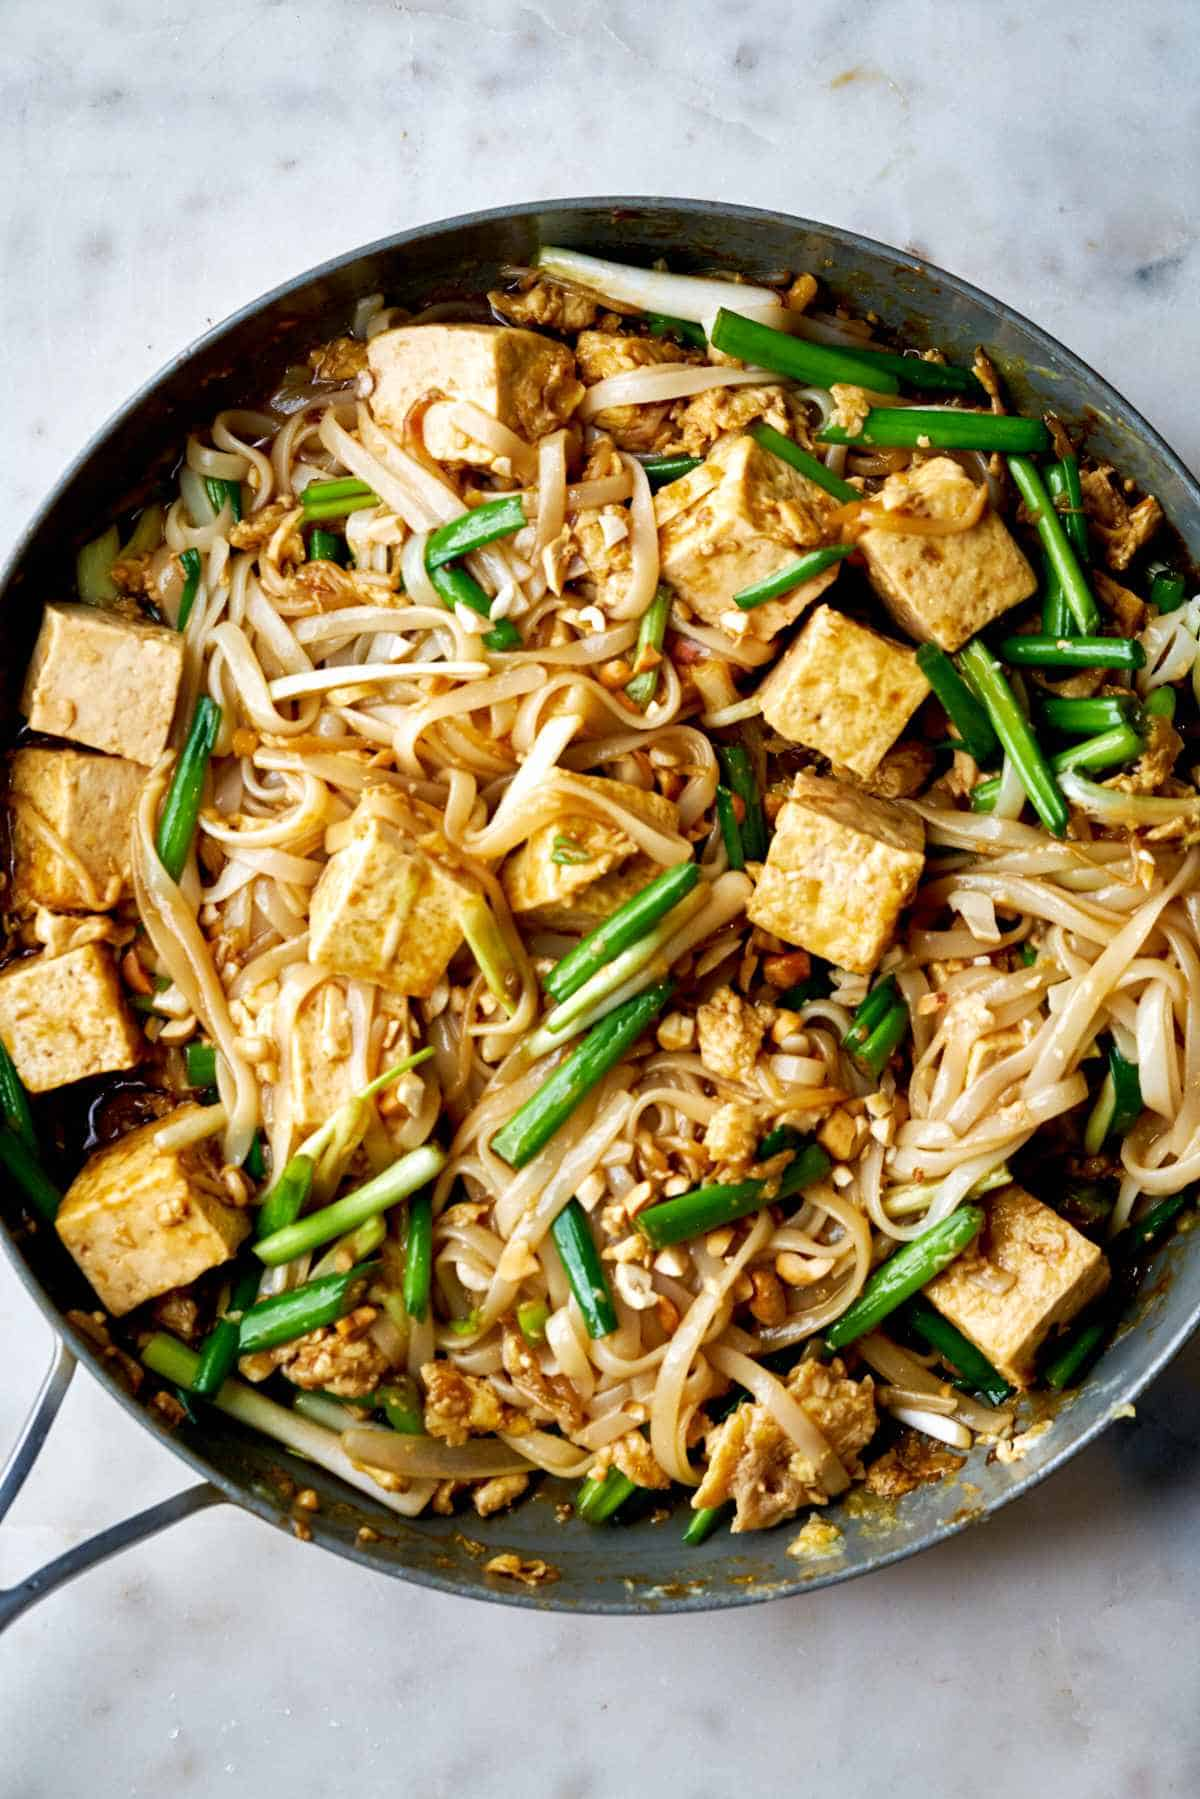 Noodles and tofu in a fry pan.